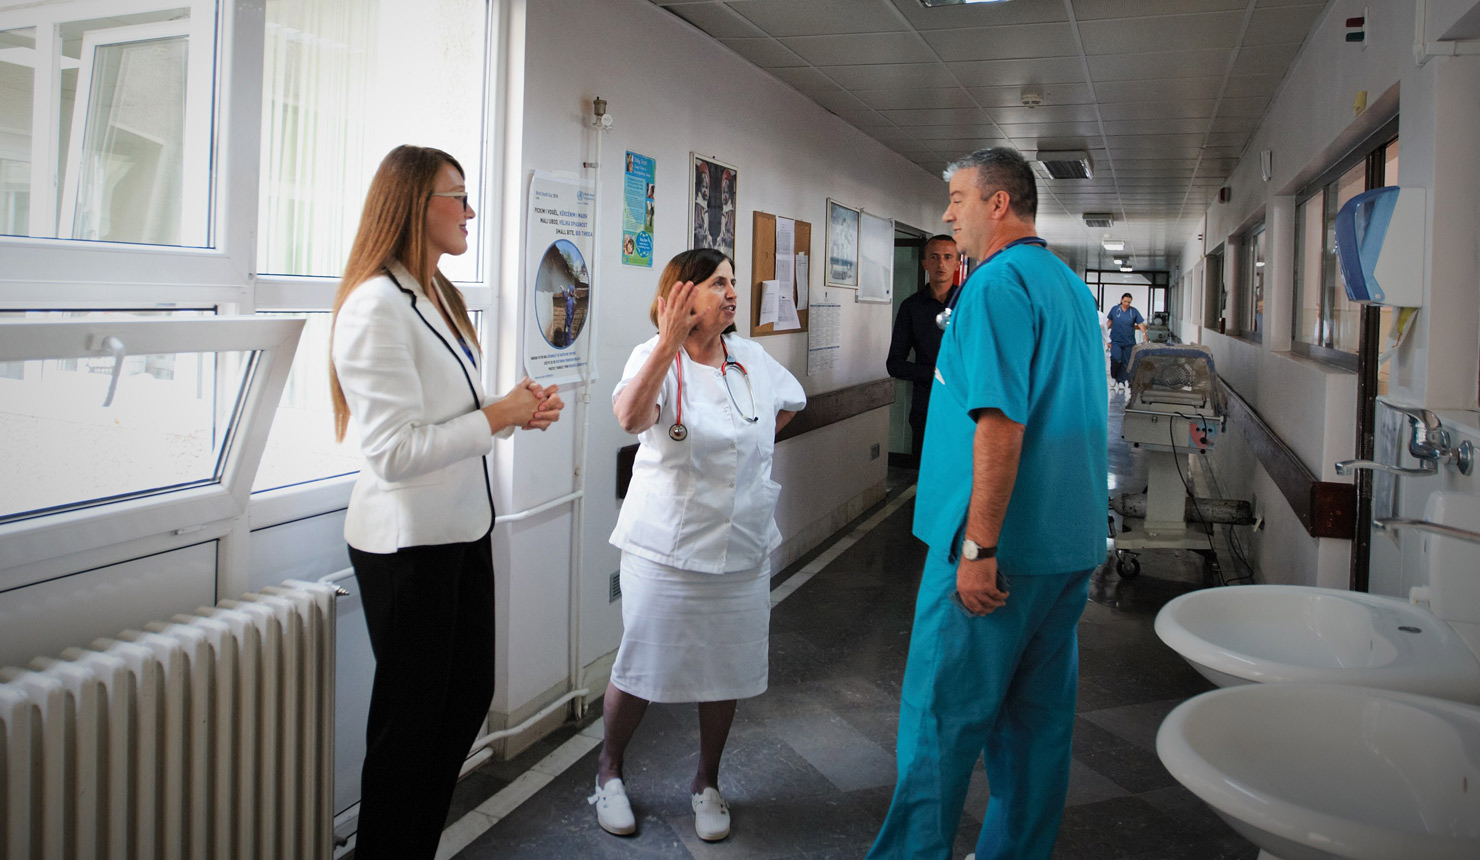 Mrika Aliu consults with physicians and staff at the Neonatology Intensive Care Unit in Prishtina, Kosovo.